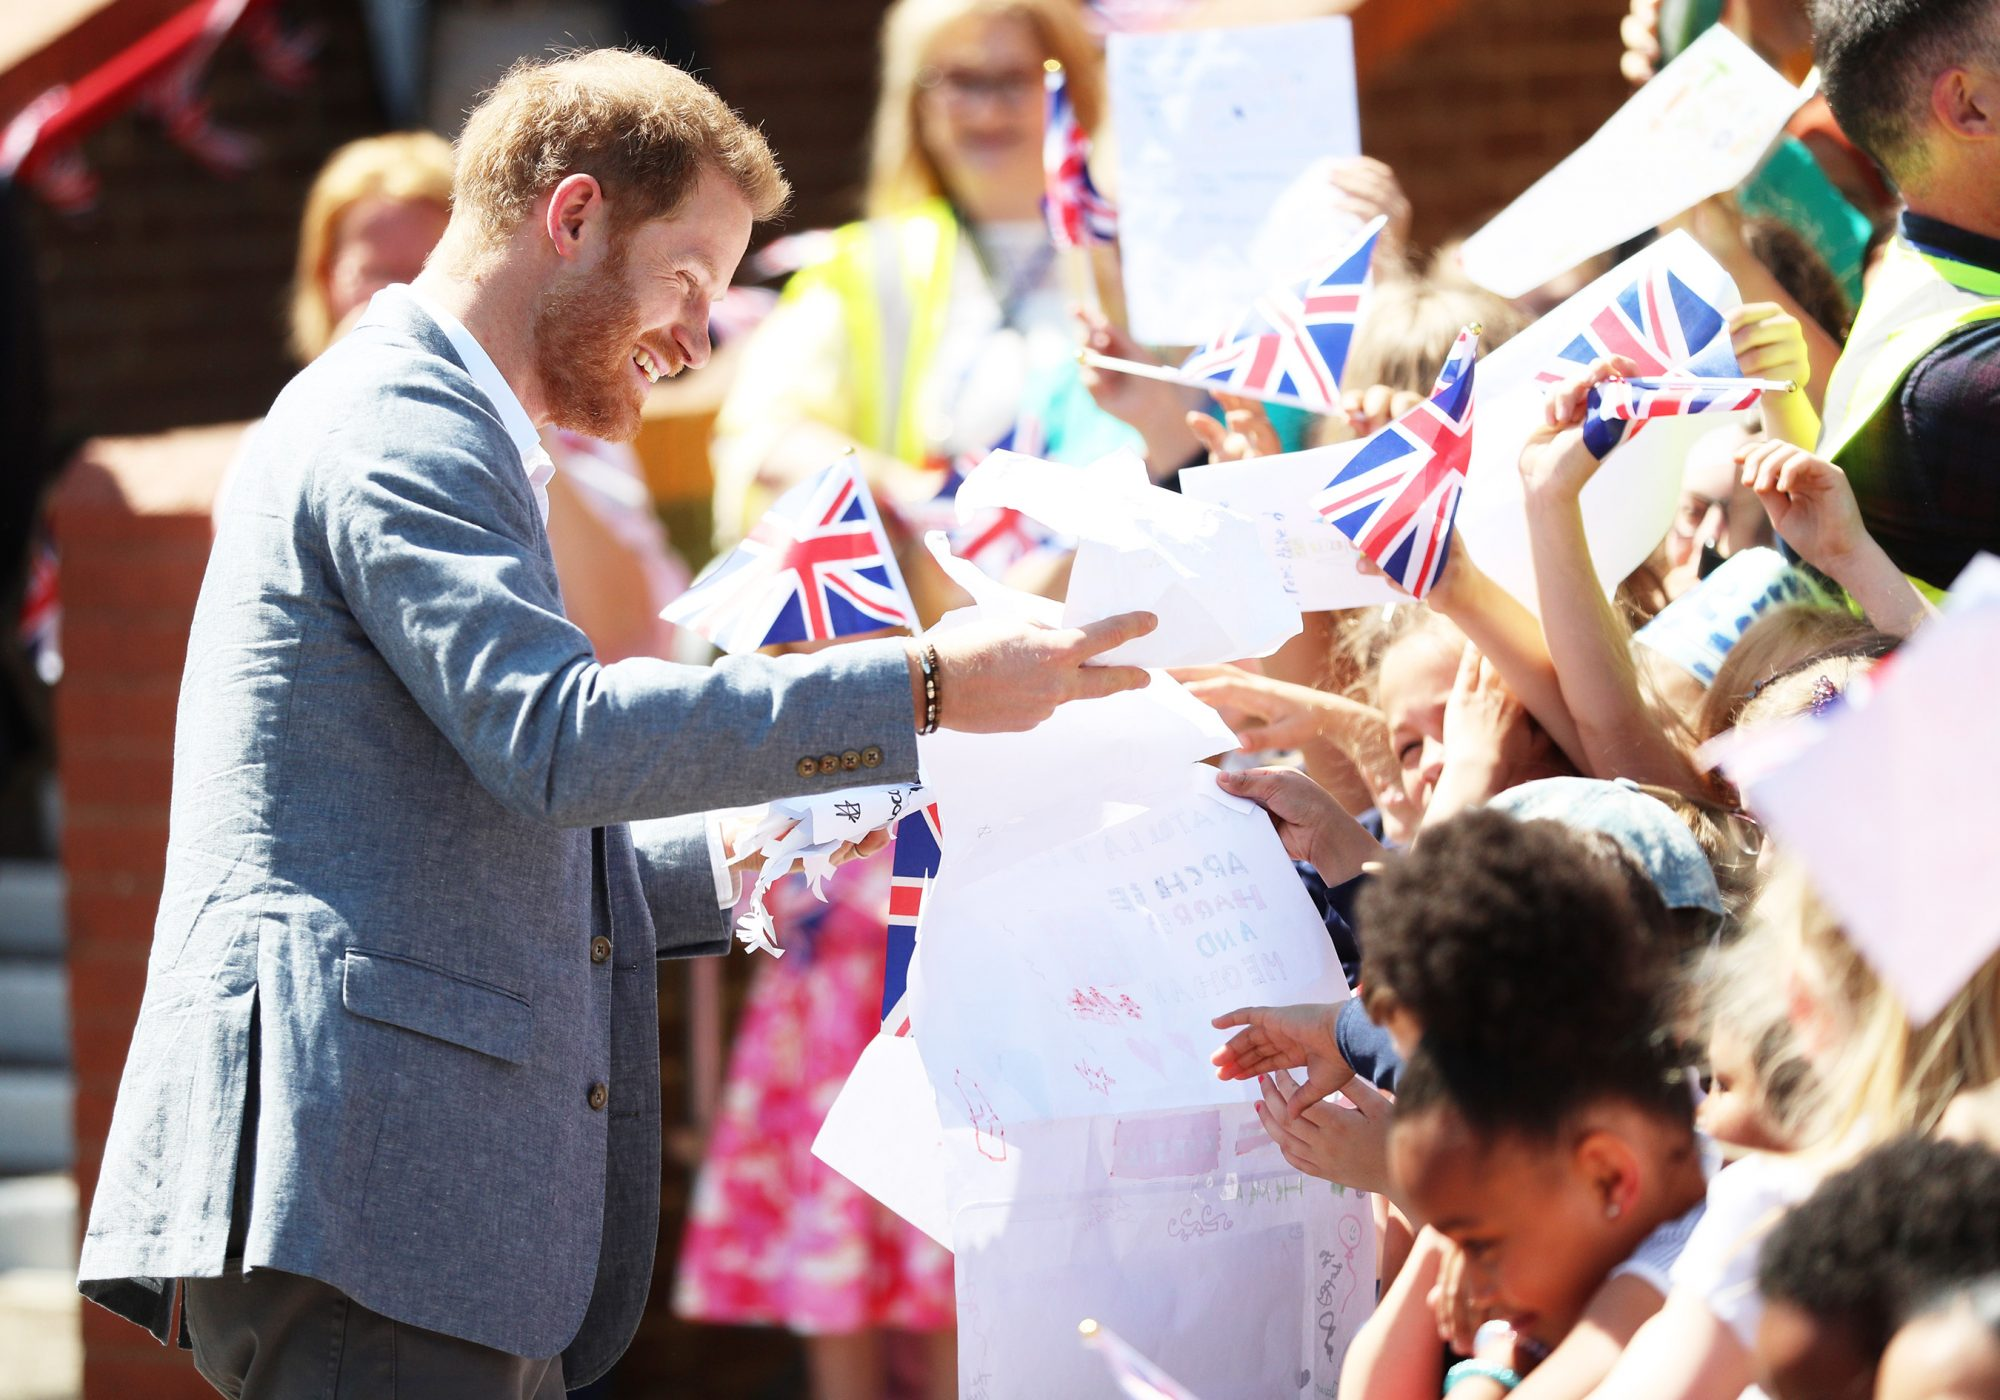 Prince Harry, Duke of Sussex, in Oxford